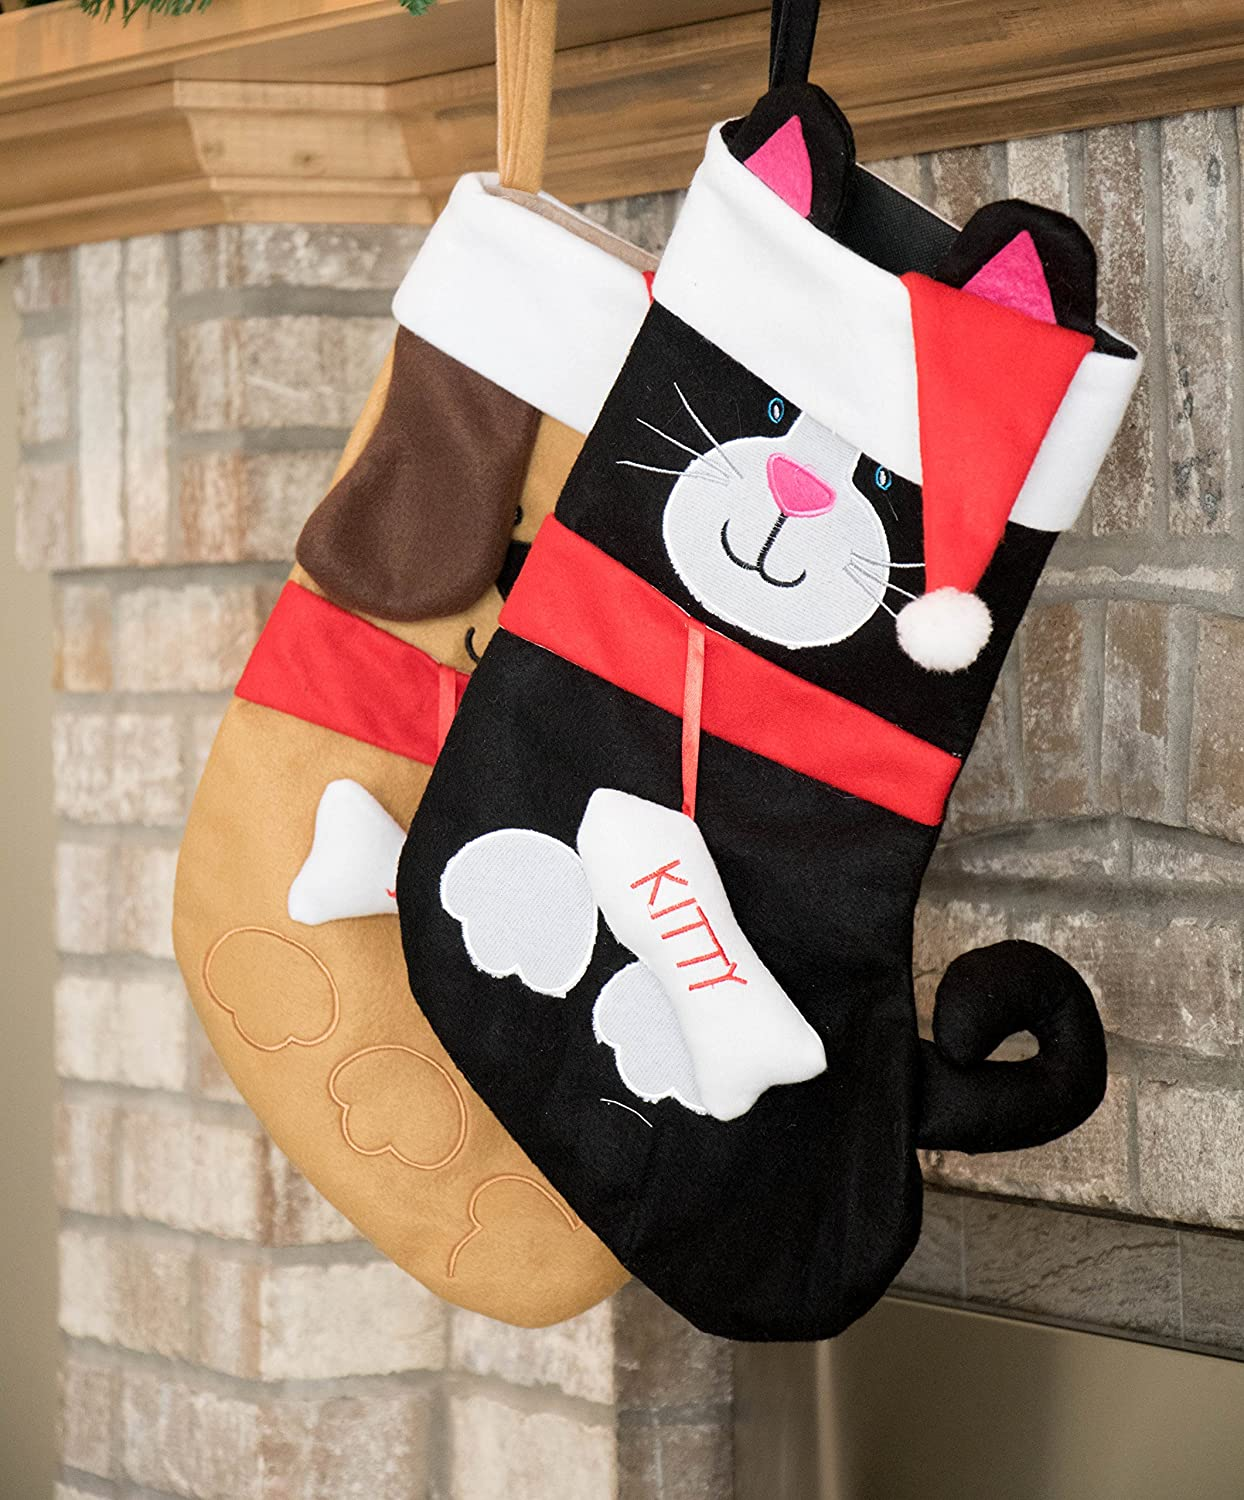 Kitty Cat Soft Plush Cloth Hanging Christmas Stocking